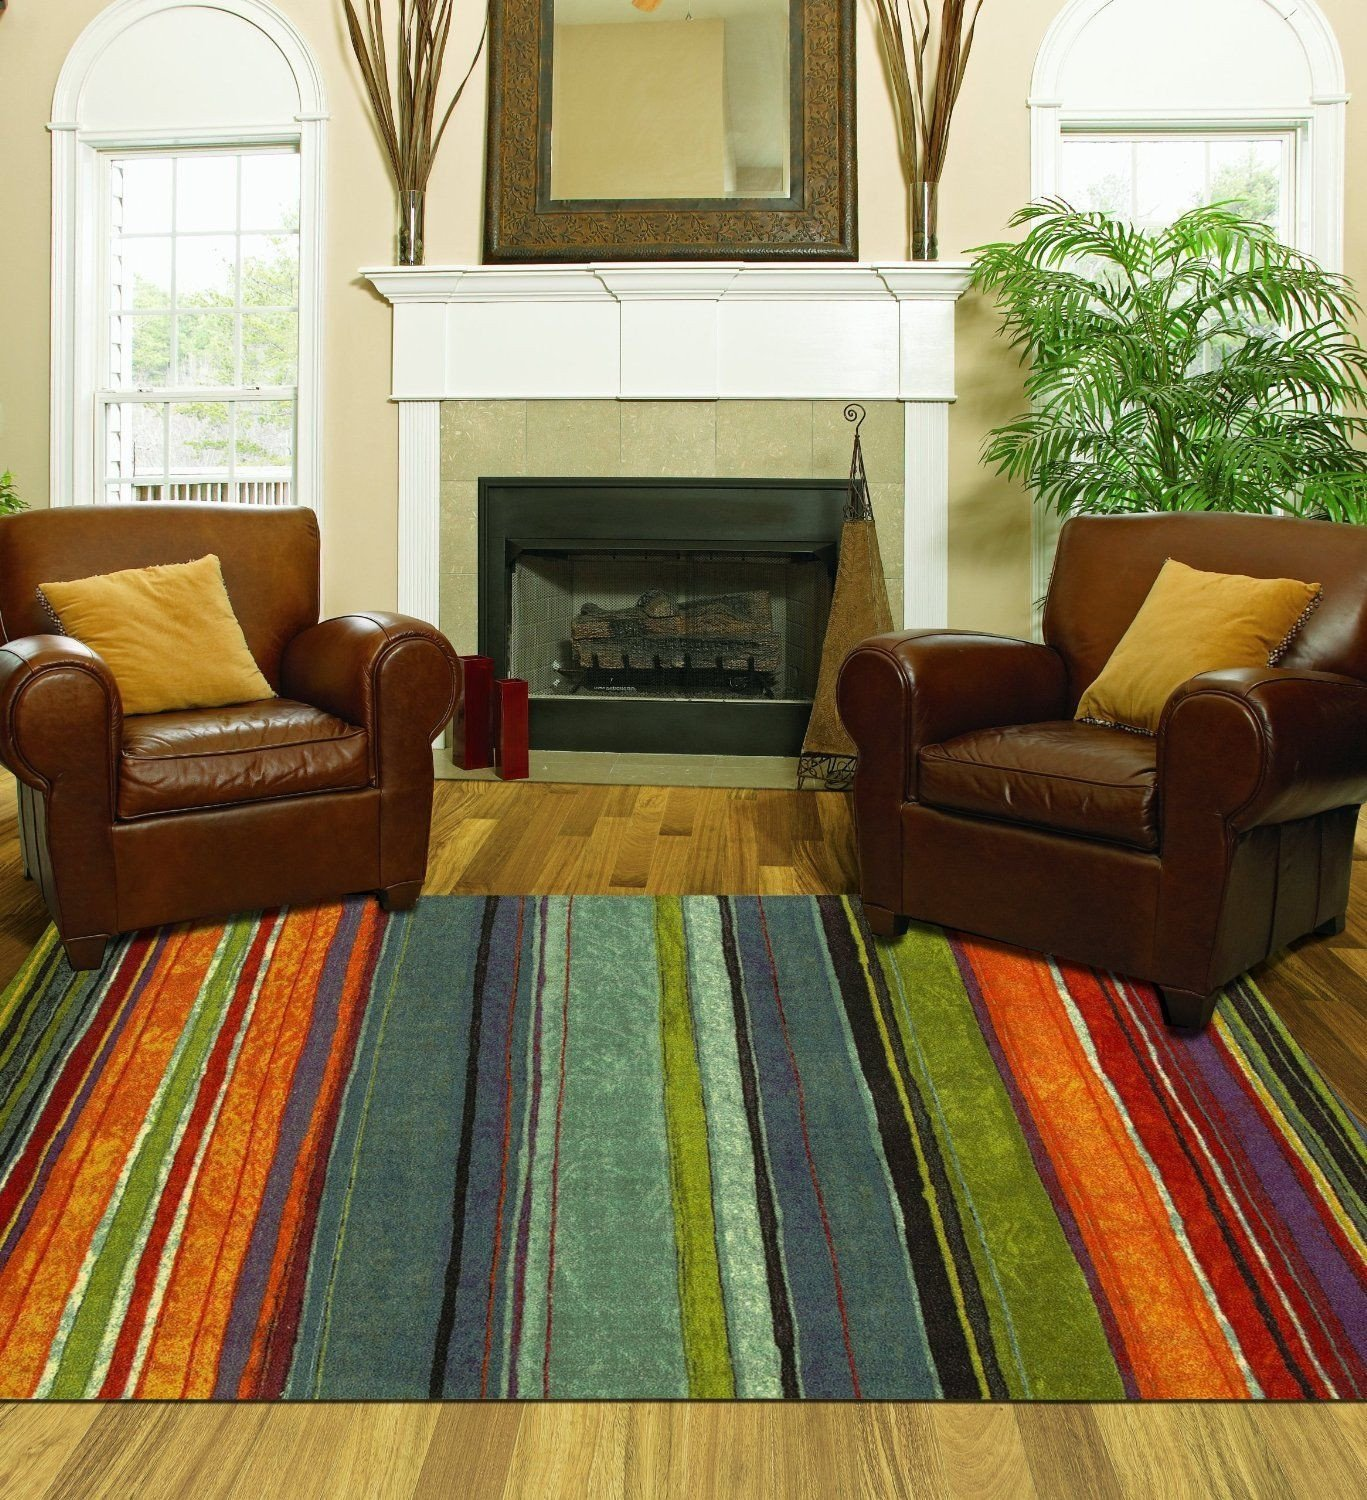 Rug for Living Room Ideas Beautiful area Rug Colorful 8x10 Living Room Size Carpet Home